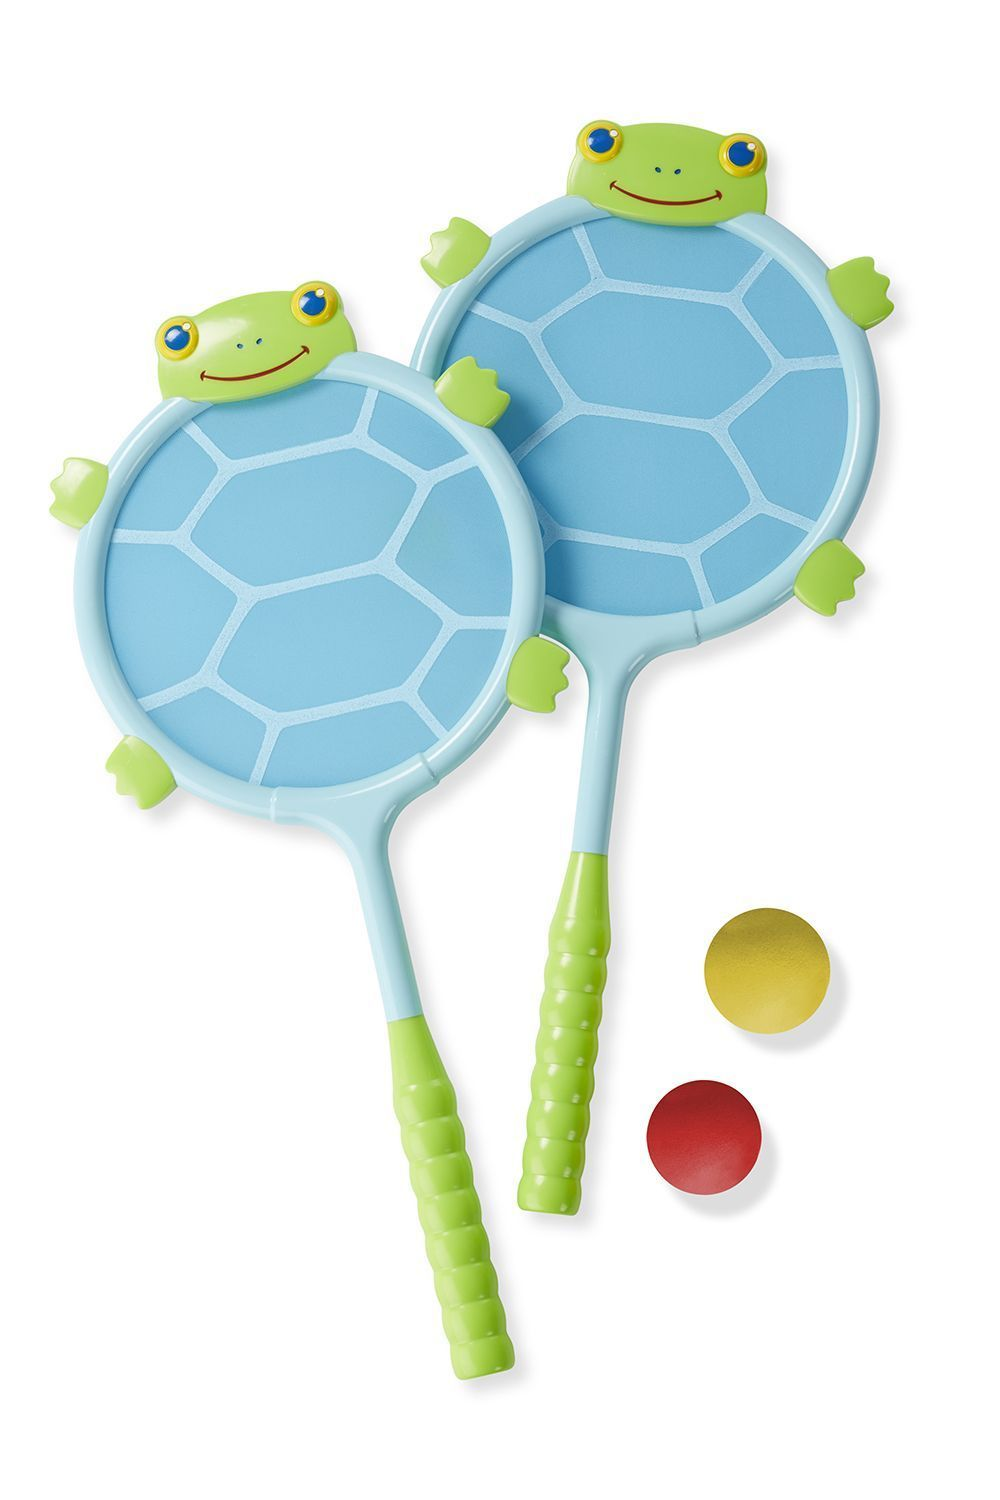 Set de raquettes de plage tortue Snappy the Turtle sur Jardindeco